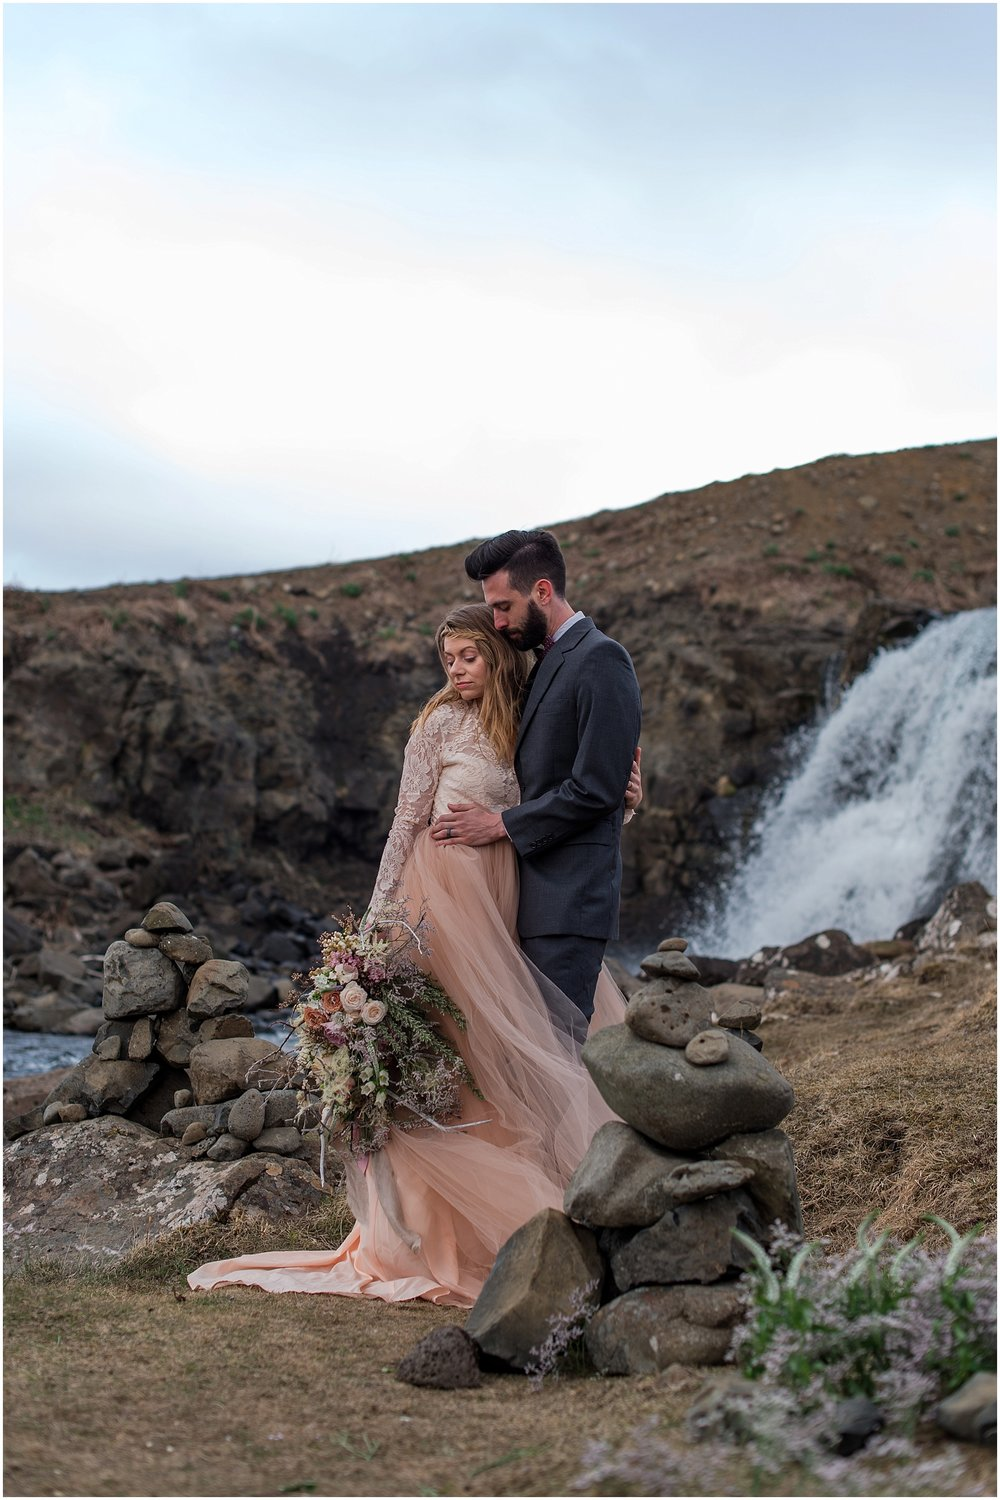 Hannah Leigh Photography Iceland Elopement_2778.jpg